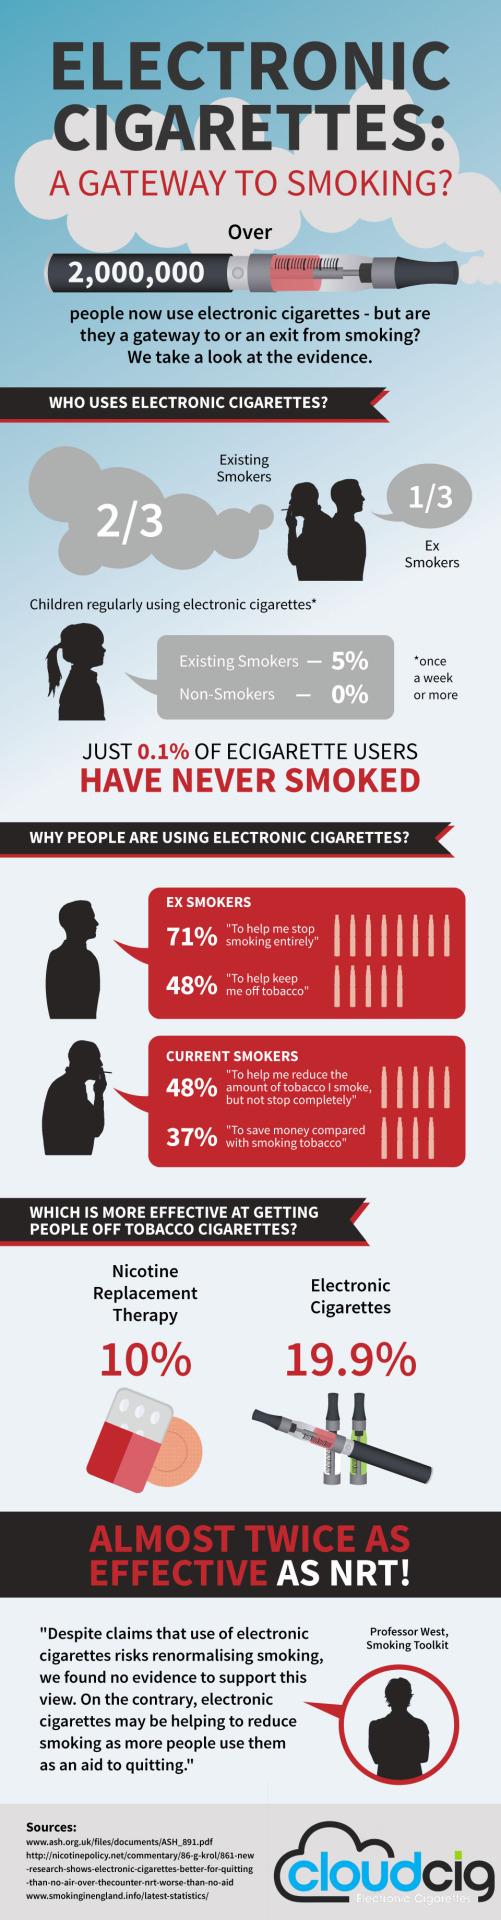 Are Electronic Cigarettes A Gateway To Smoking?